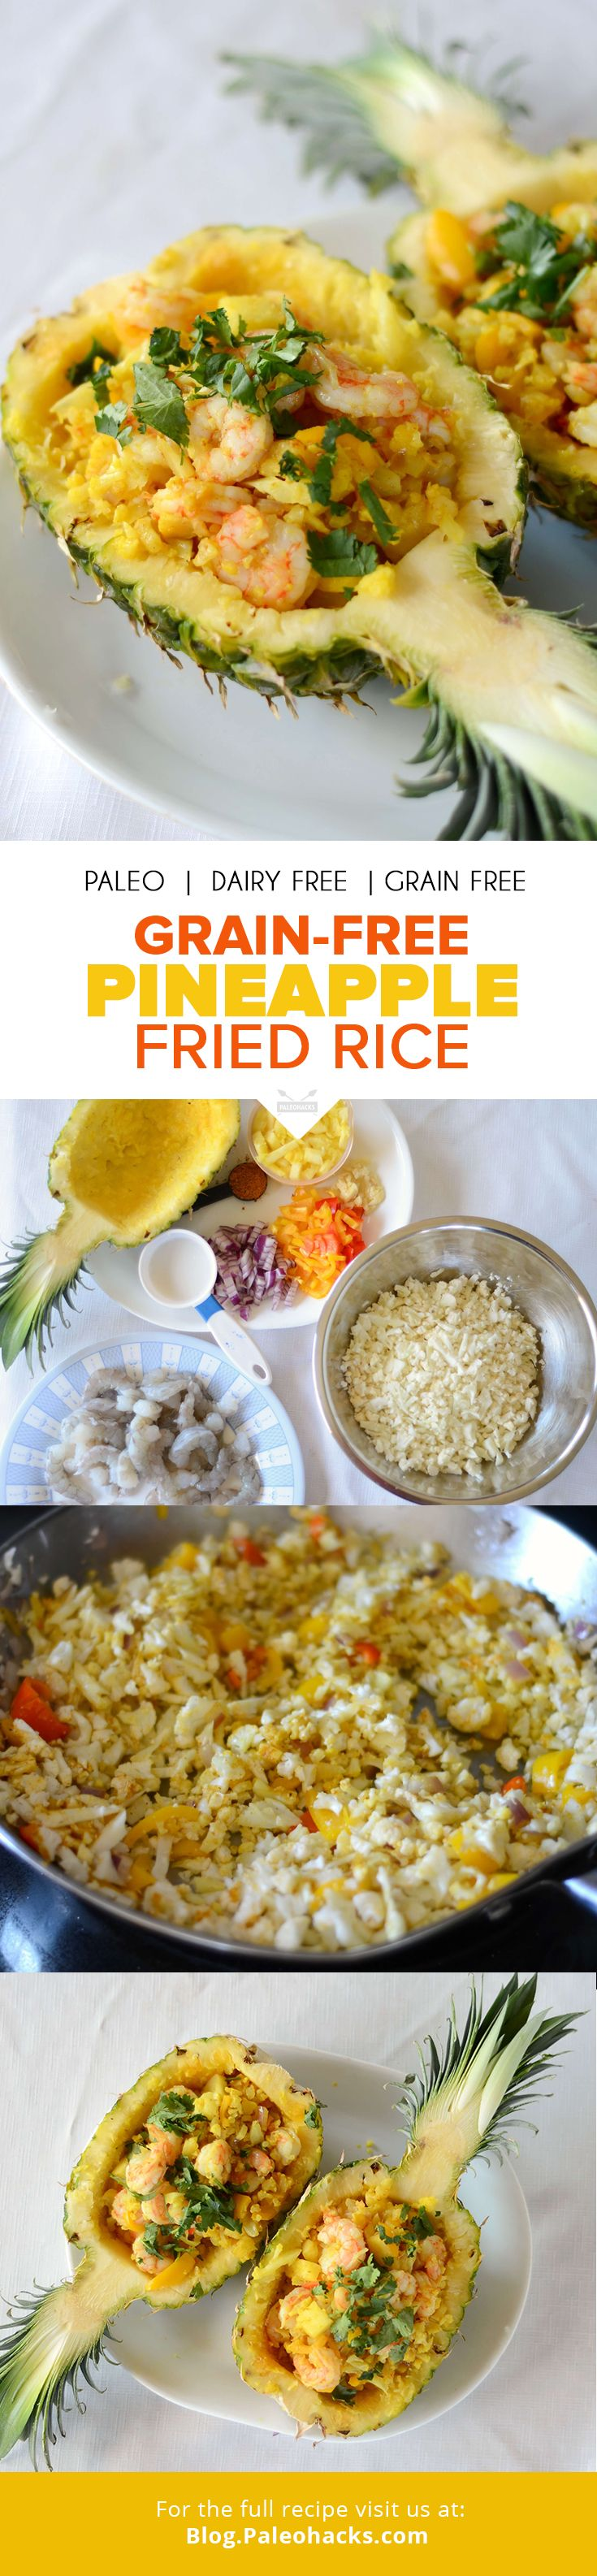 PIN-grain-free-pineapple-fried-riceWant a super simple stovetop dinner that tastes fancy? Try this low-carb take on fried rice with shrimp, pineapple, and peppers. It's served in a hollowed-out pineapple for an extra wow factor! For the full recipe please visit us at: http://paleo.co/GrainFreeFriedRice #paleohacks #paleo